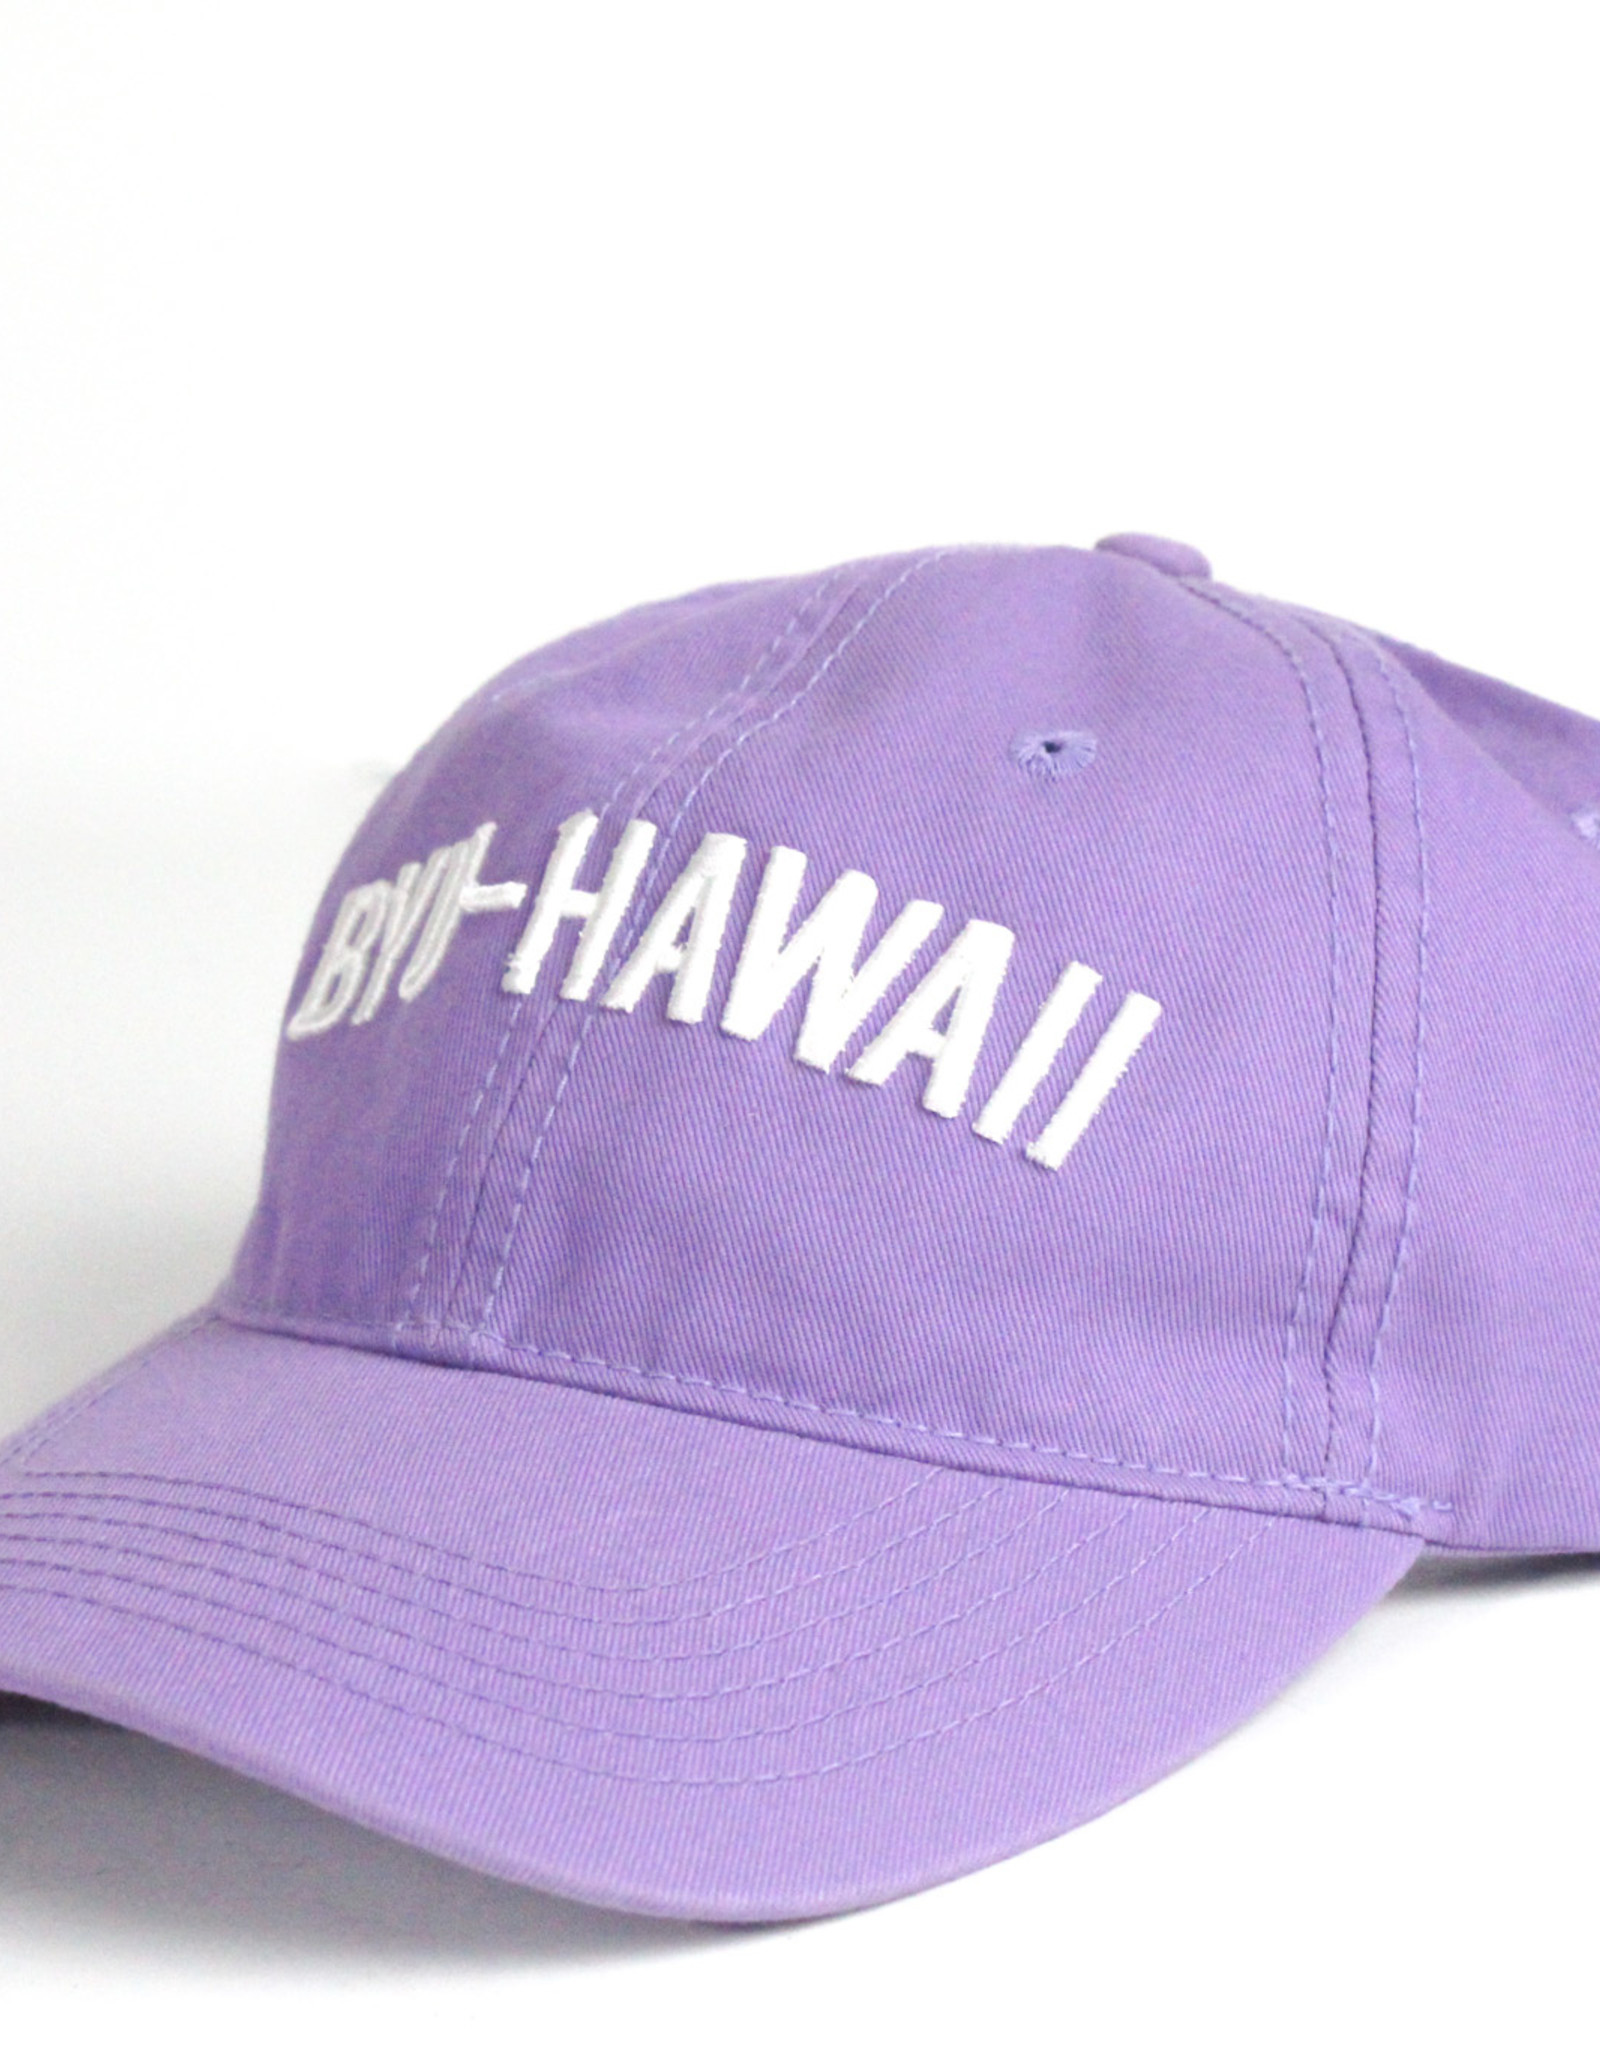 BYU-Hawaii Washed Chino Pioneer Hat